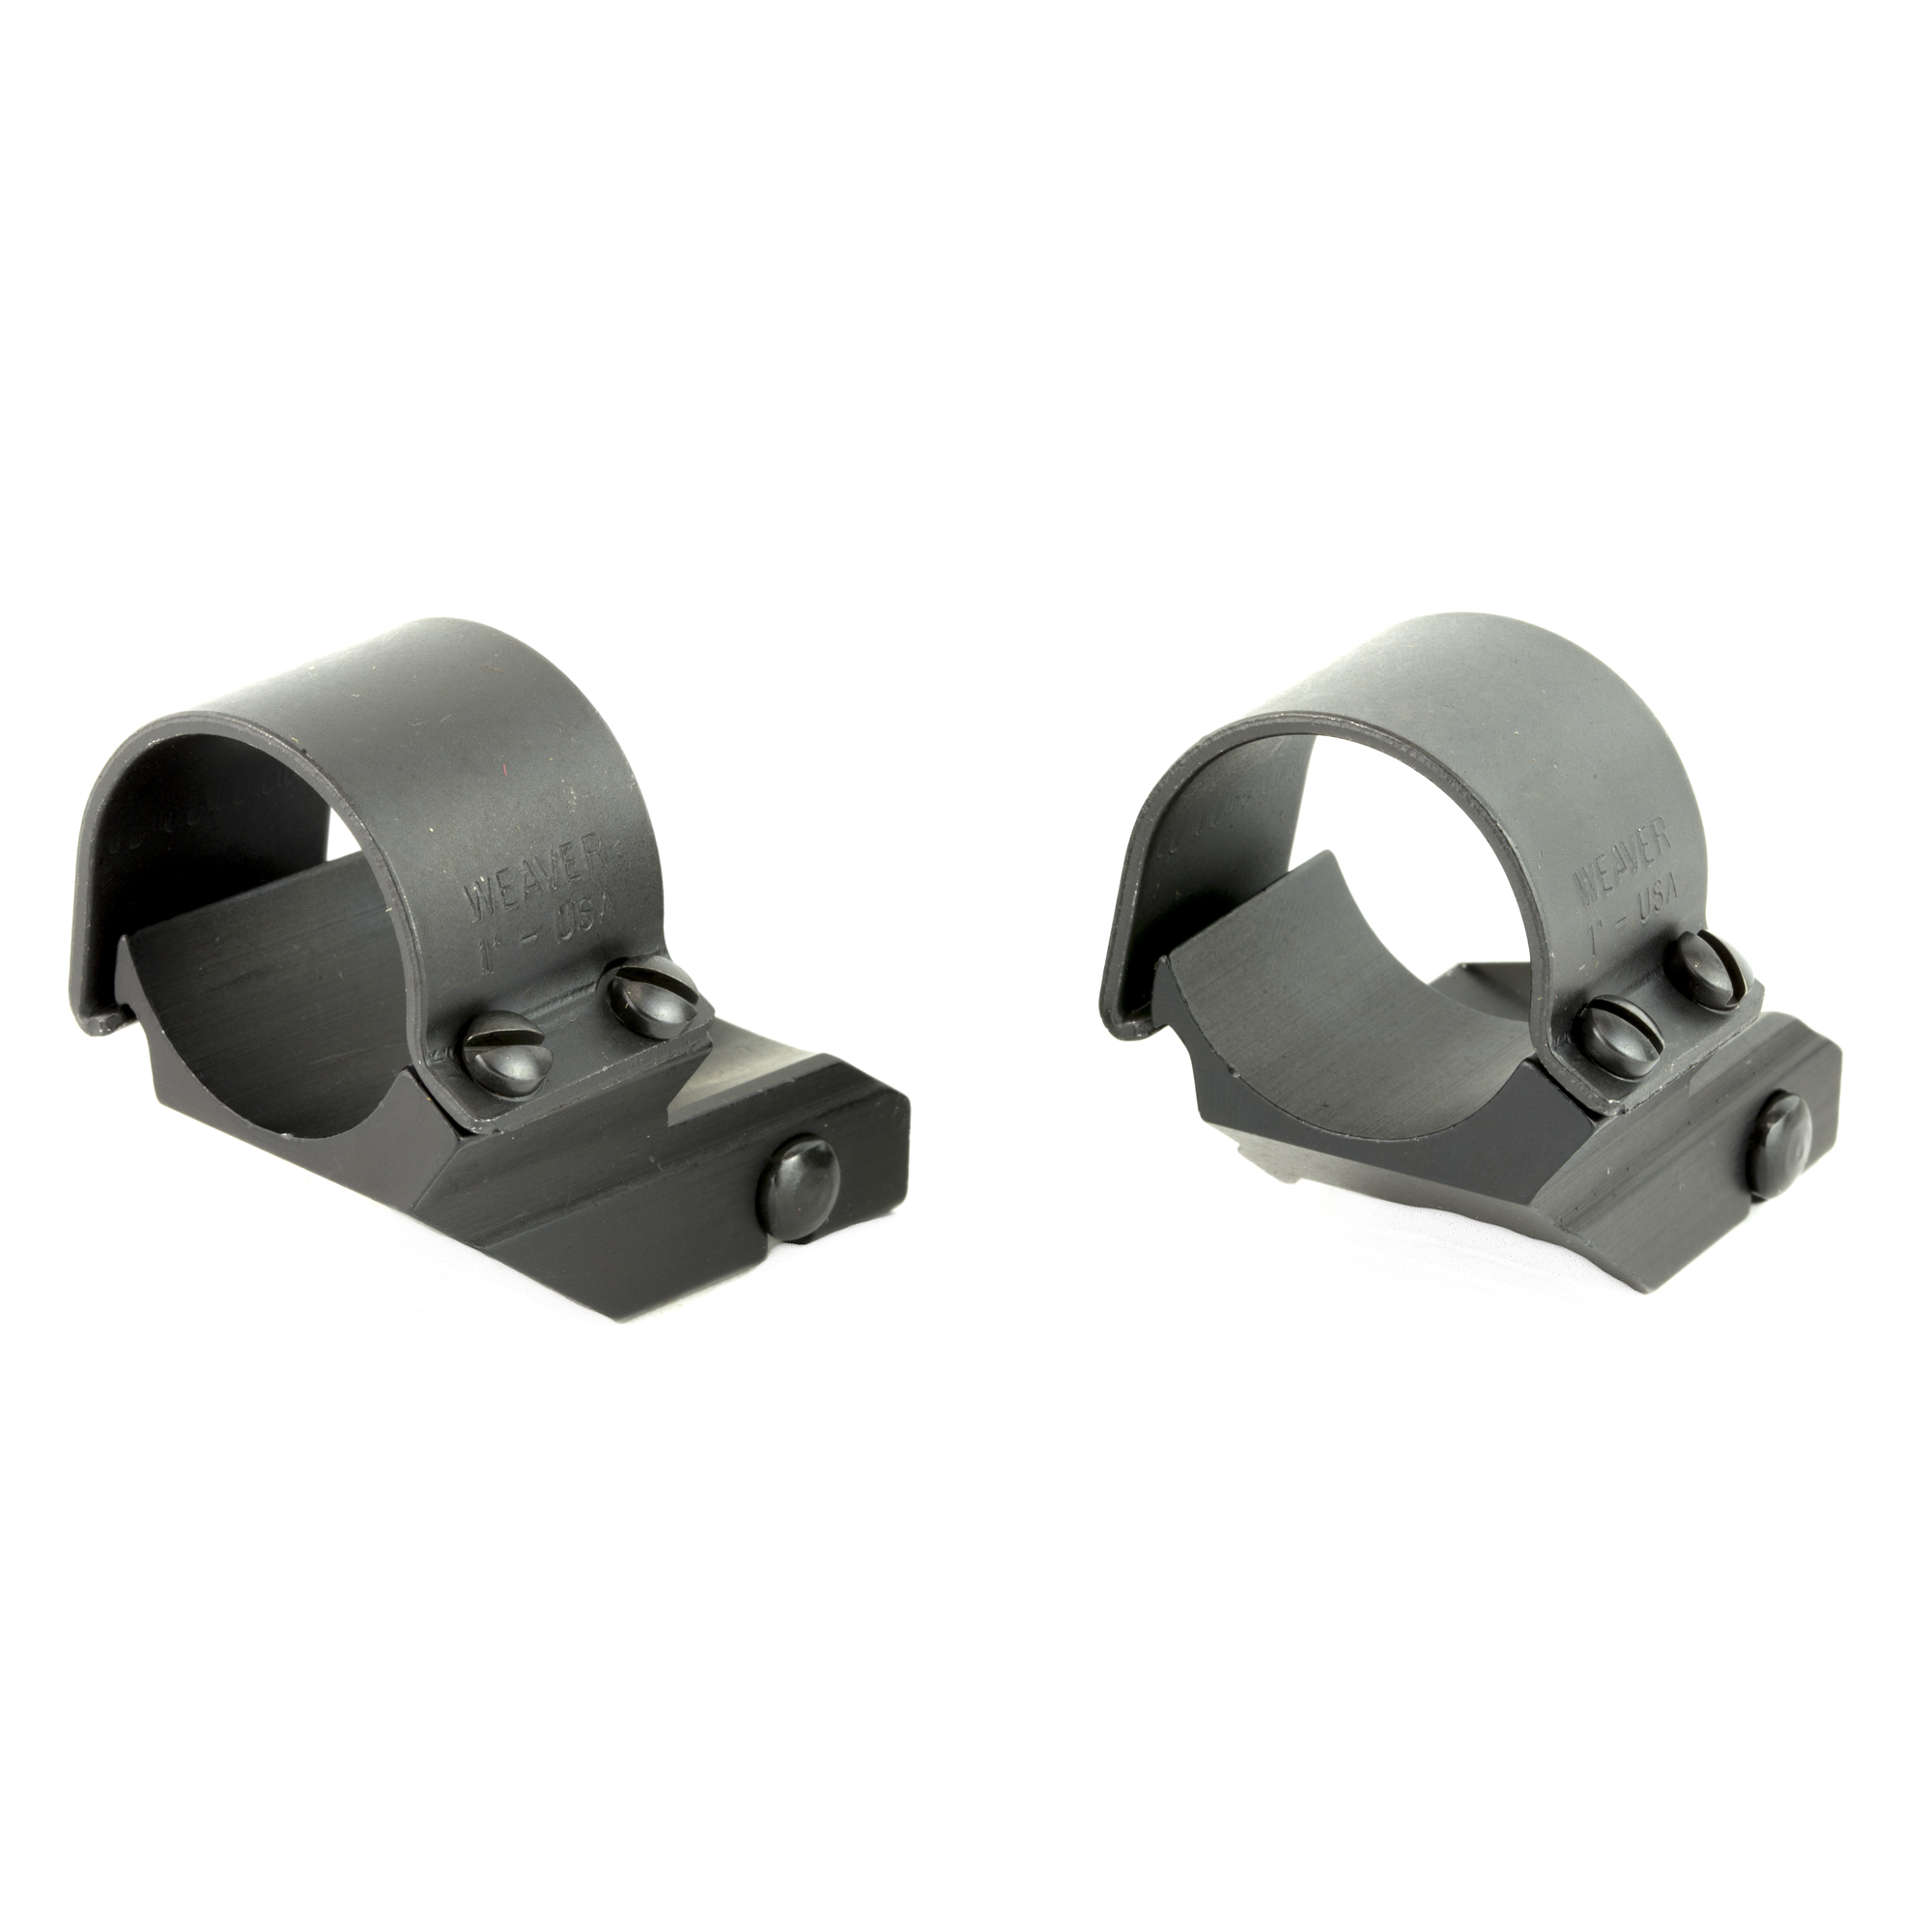 Try these to get the ideal eye relief. They let you position your scope forward or rearward.